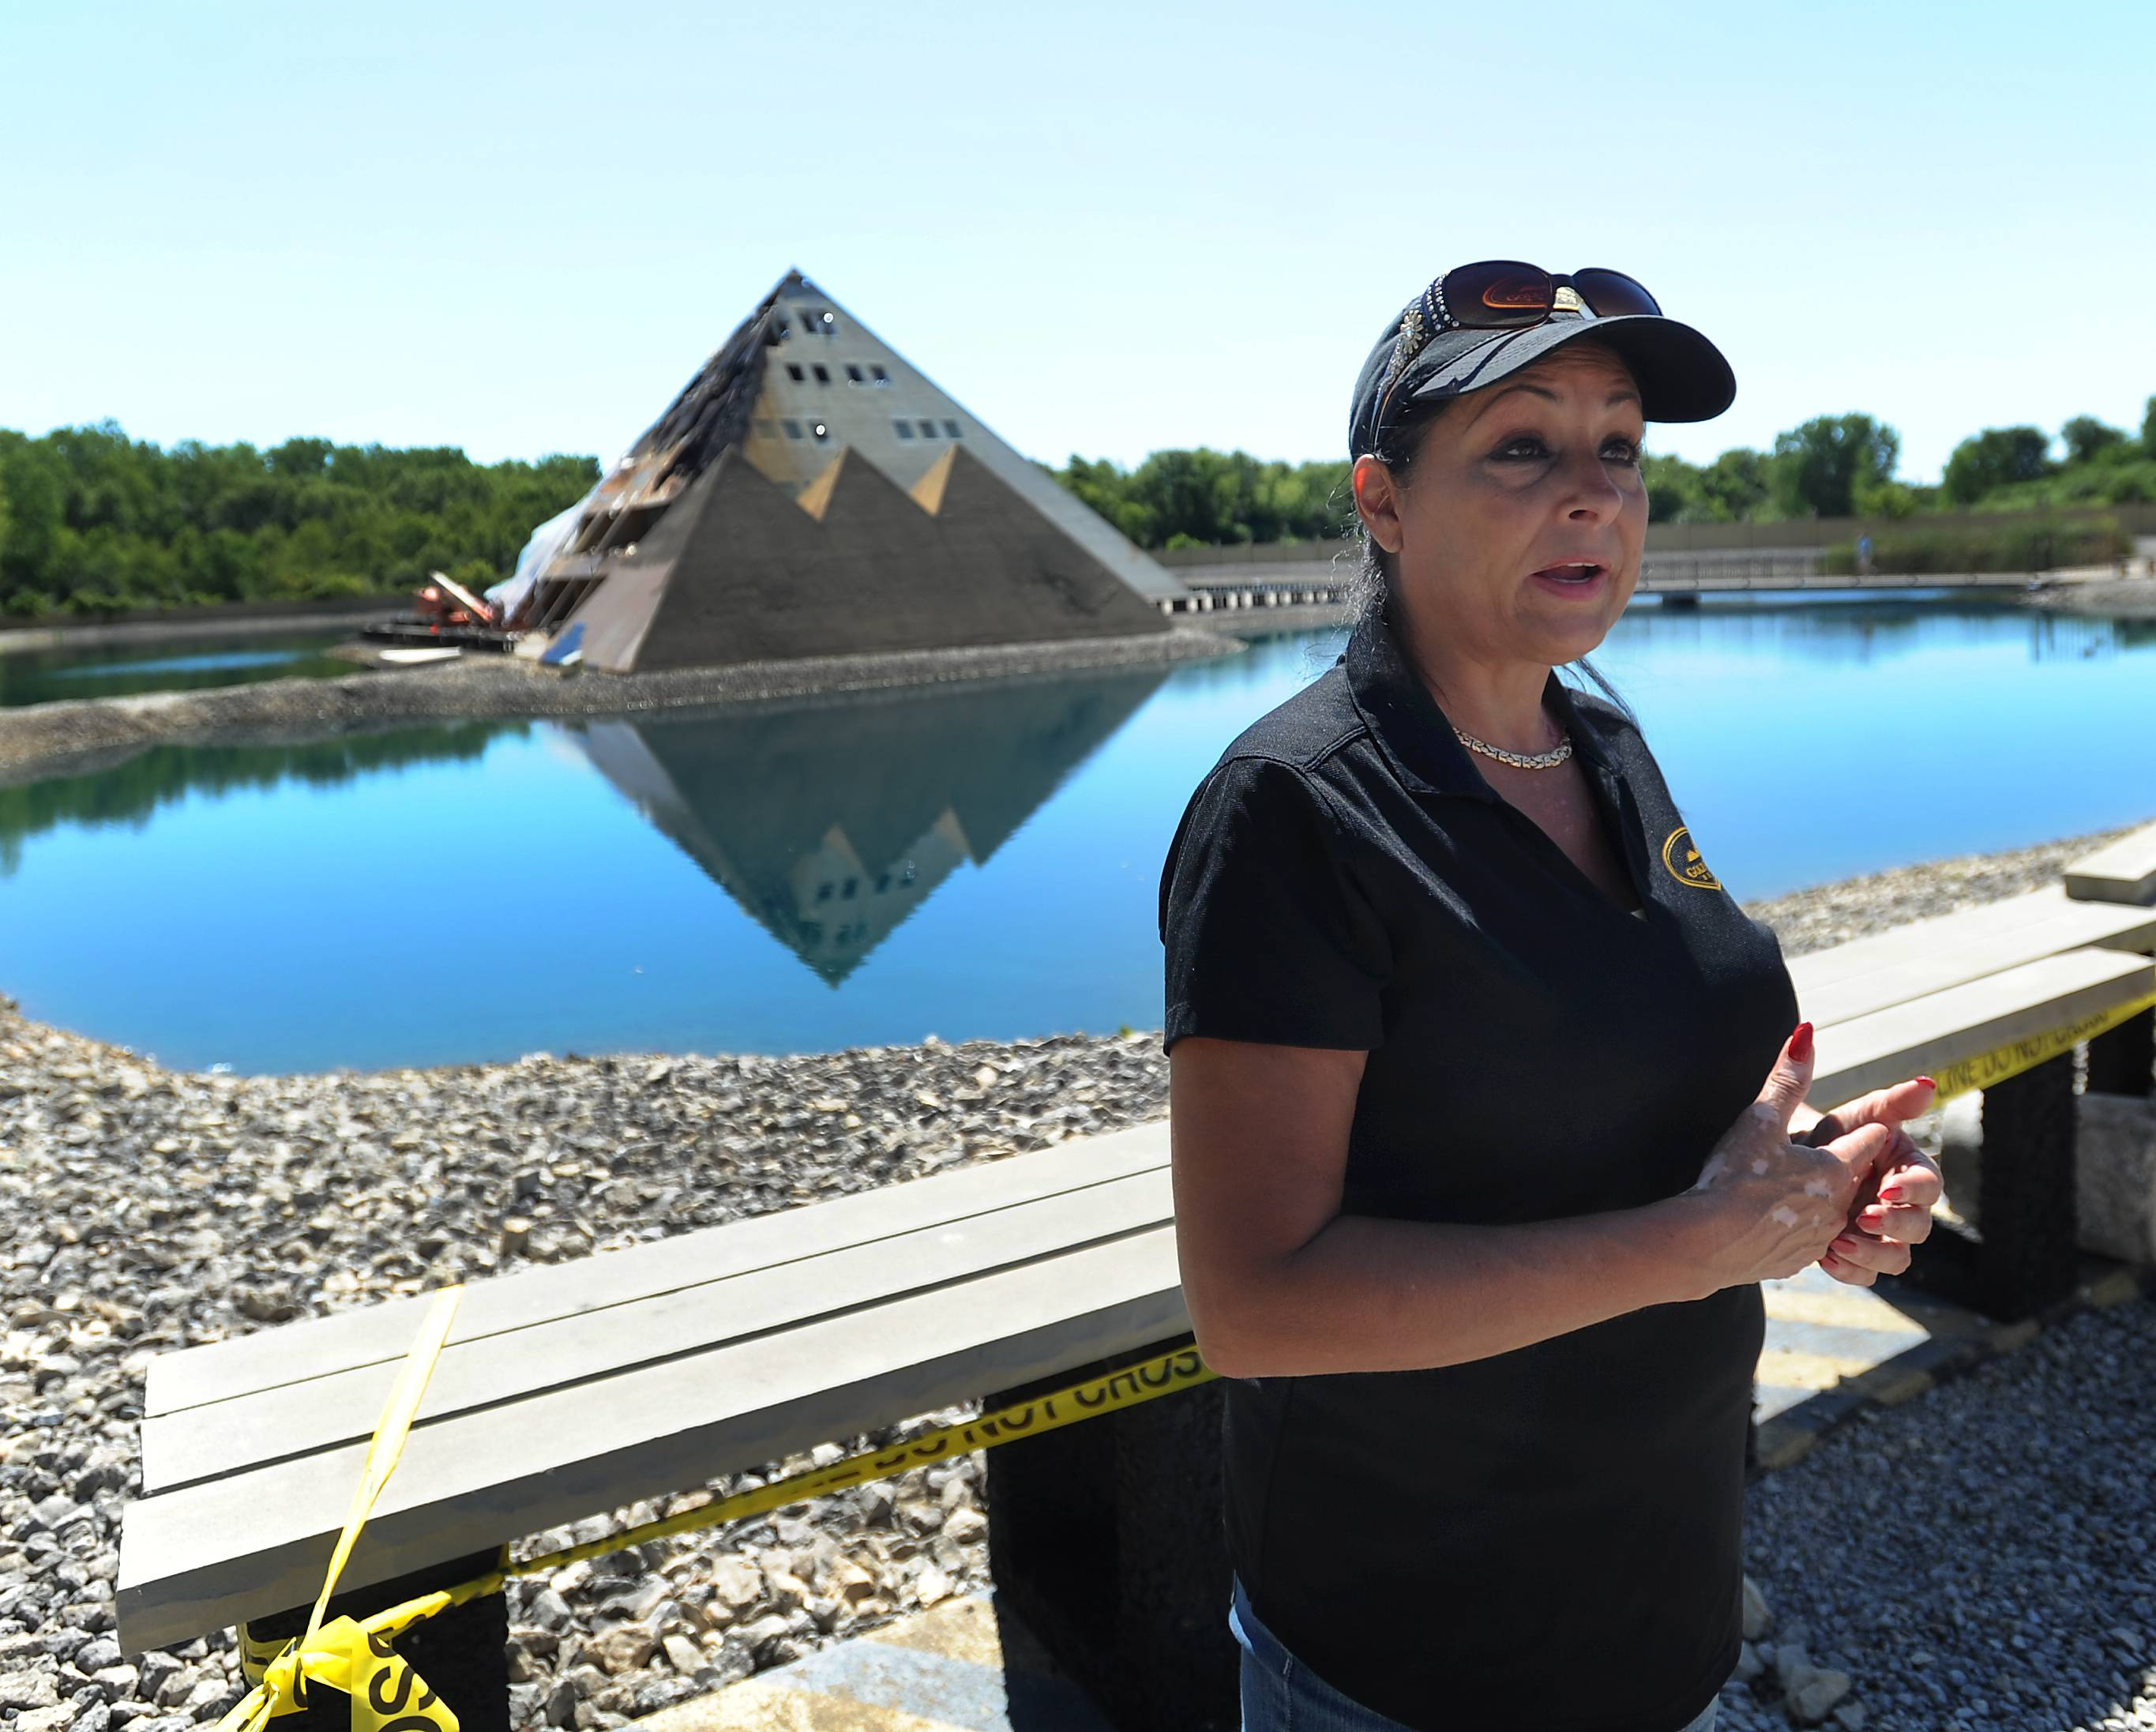 Yolanda Fierro, a spokeswoman and event coordinator for the Gold Pyramid House in Wadsworth, said the owners are assessing the damage and whether any of the Egyptian-related artifacts displayed in the house's first- and second-floor museum can be salvaged.